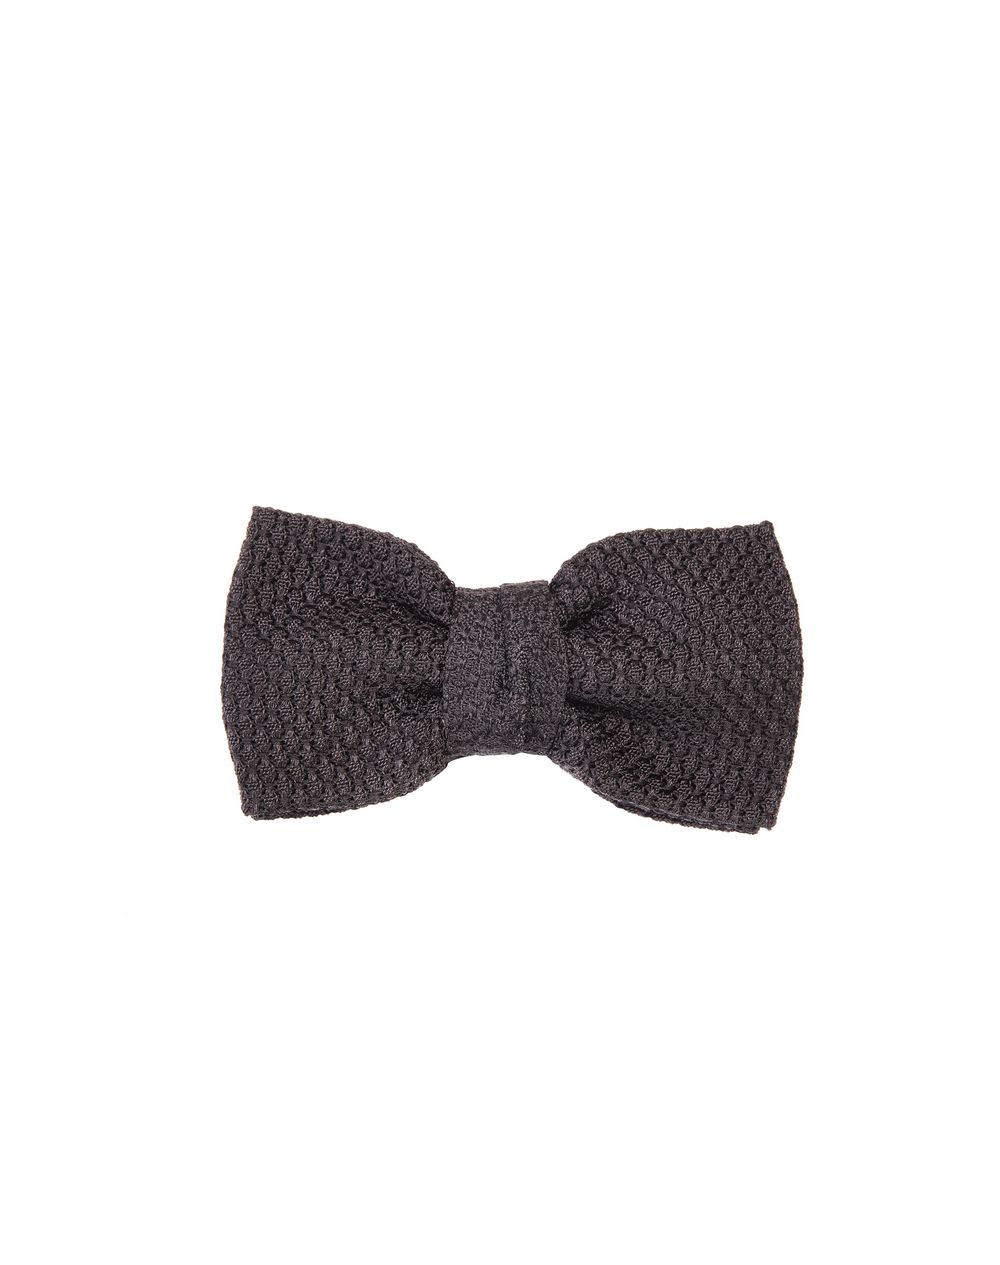 """PARIS"" BLACK BOW TIE - Lanvin"